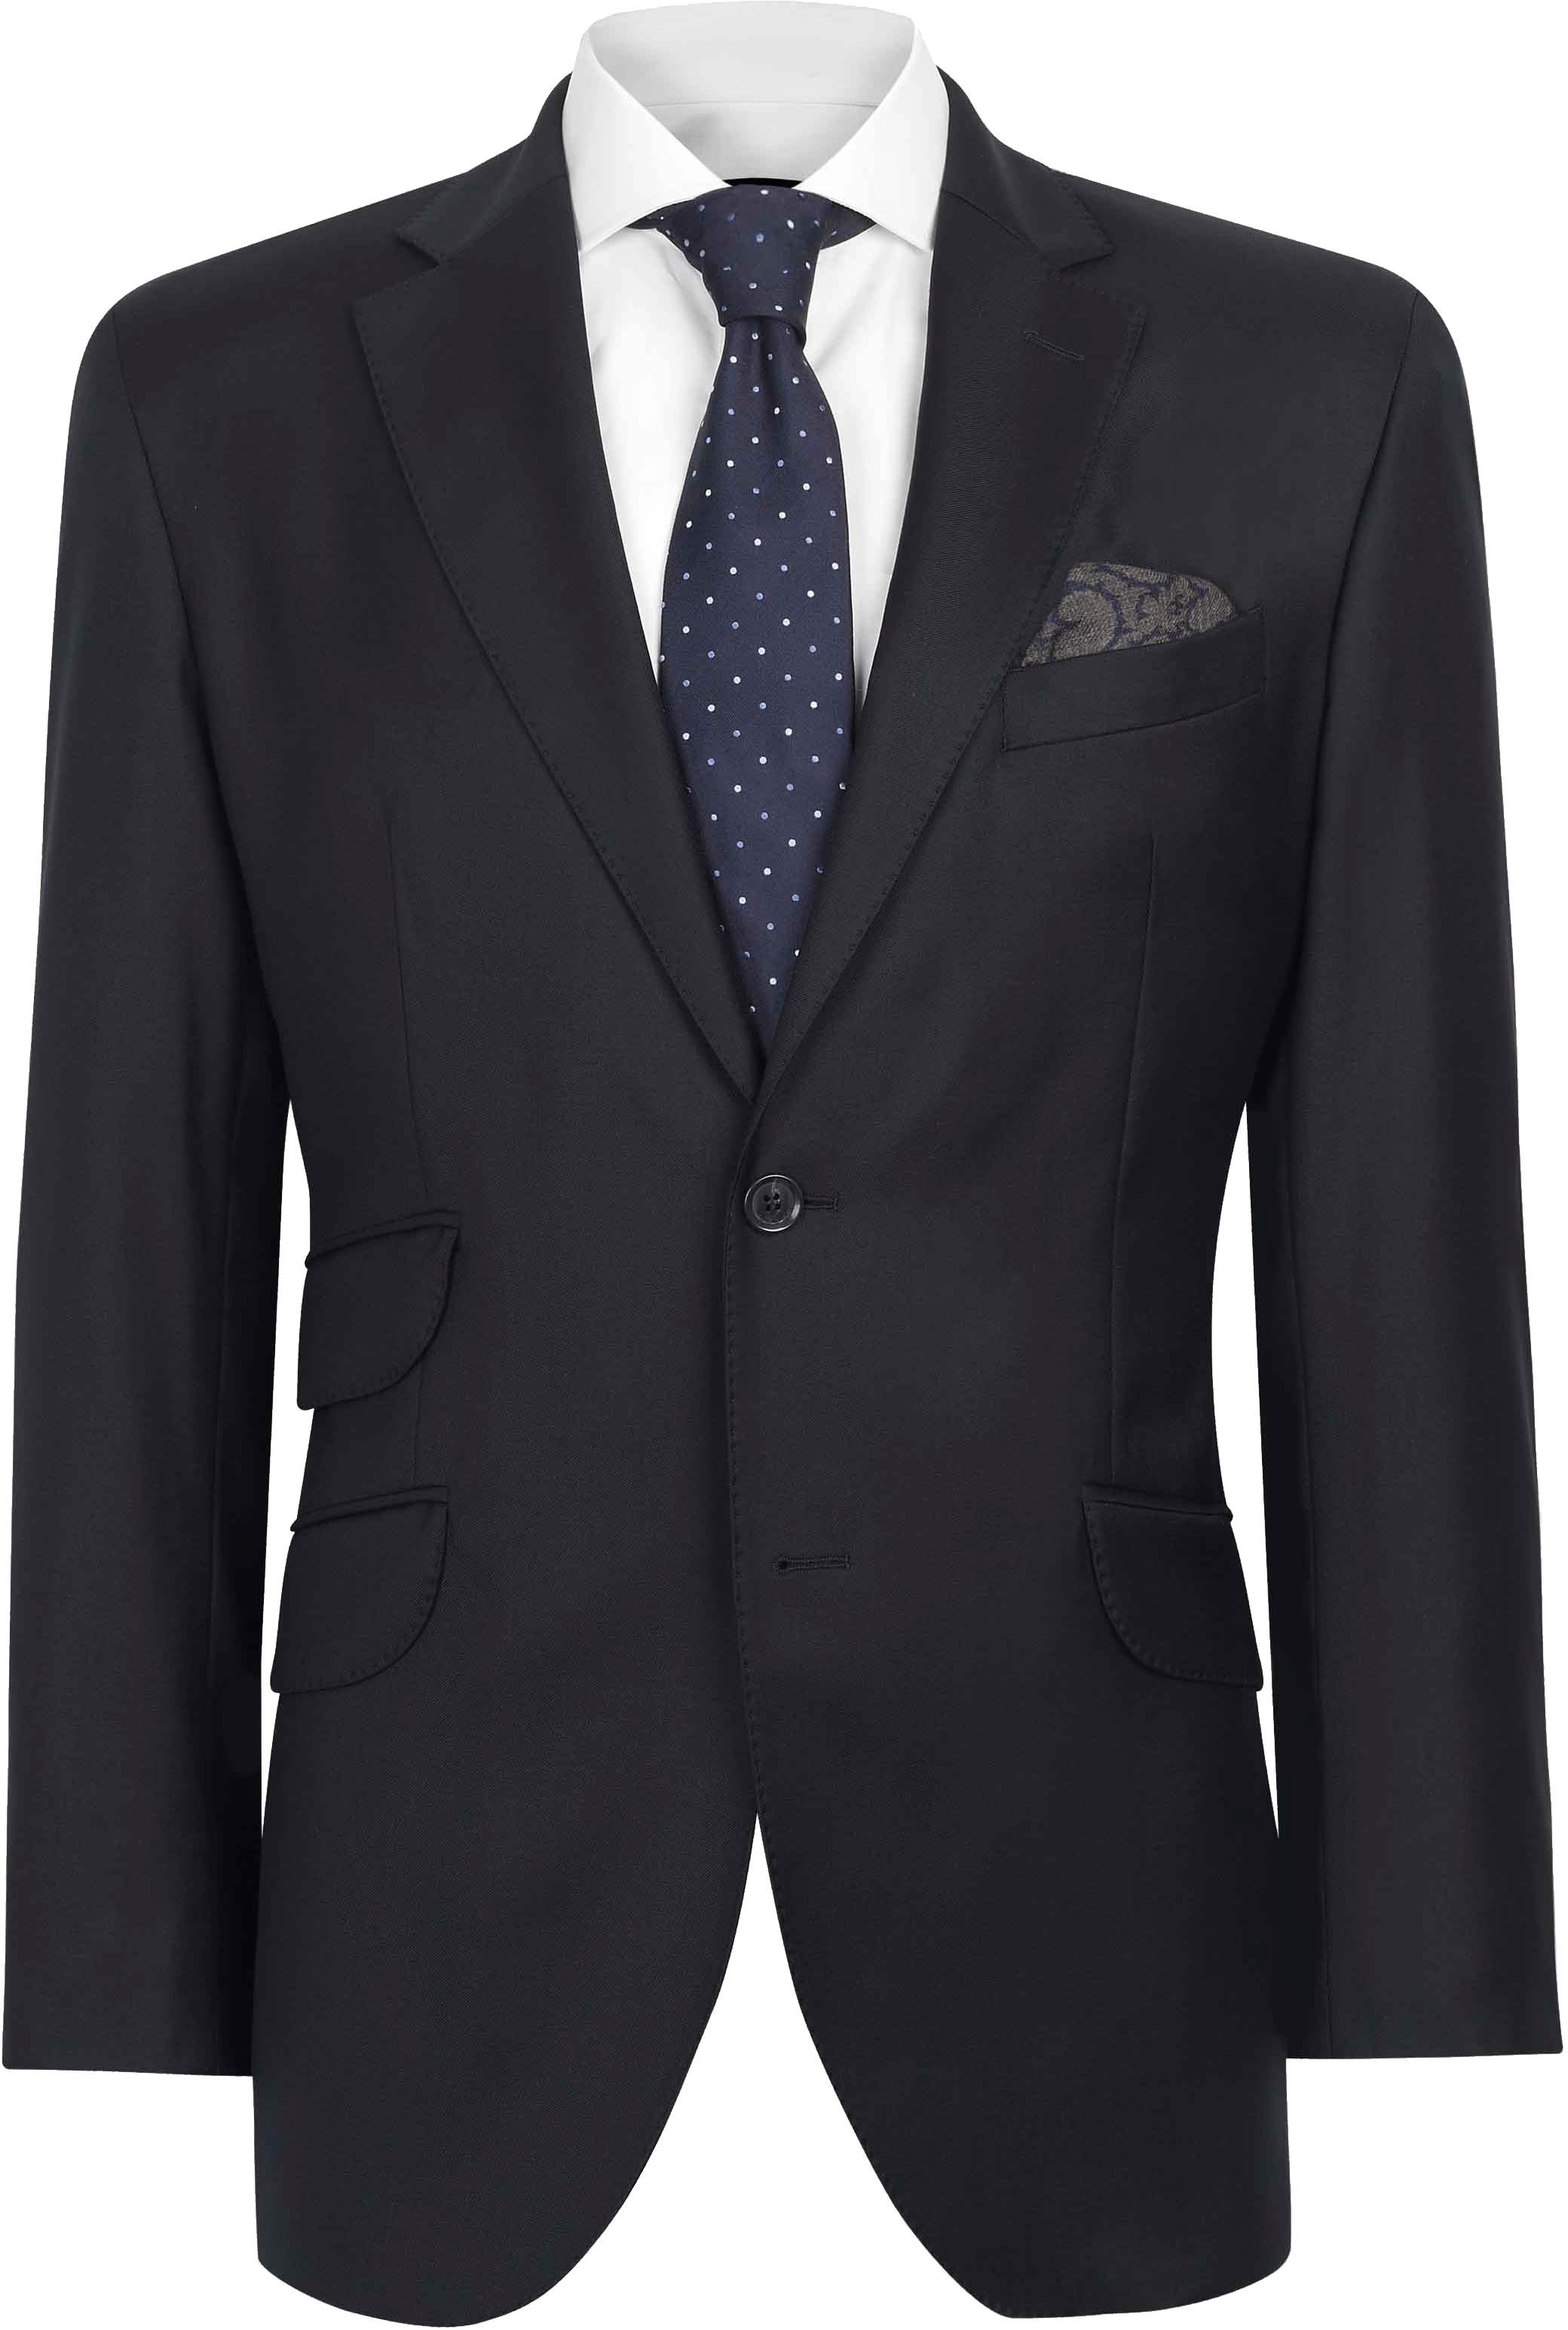 Suit HD PNG